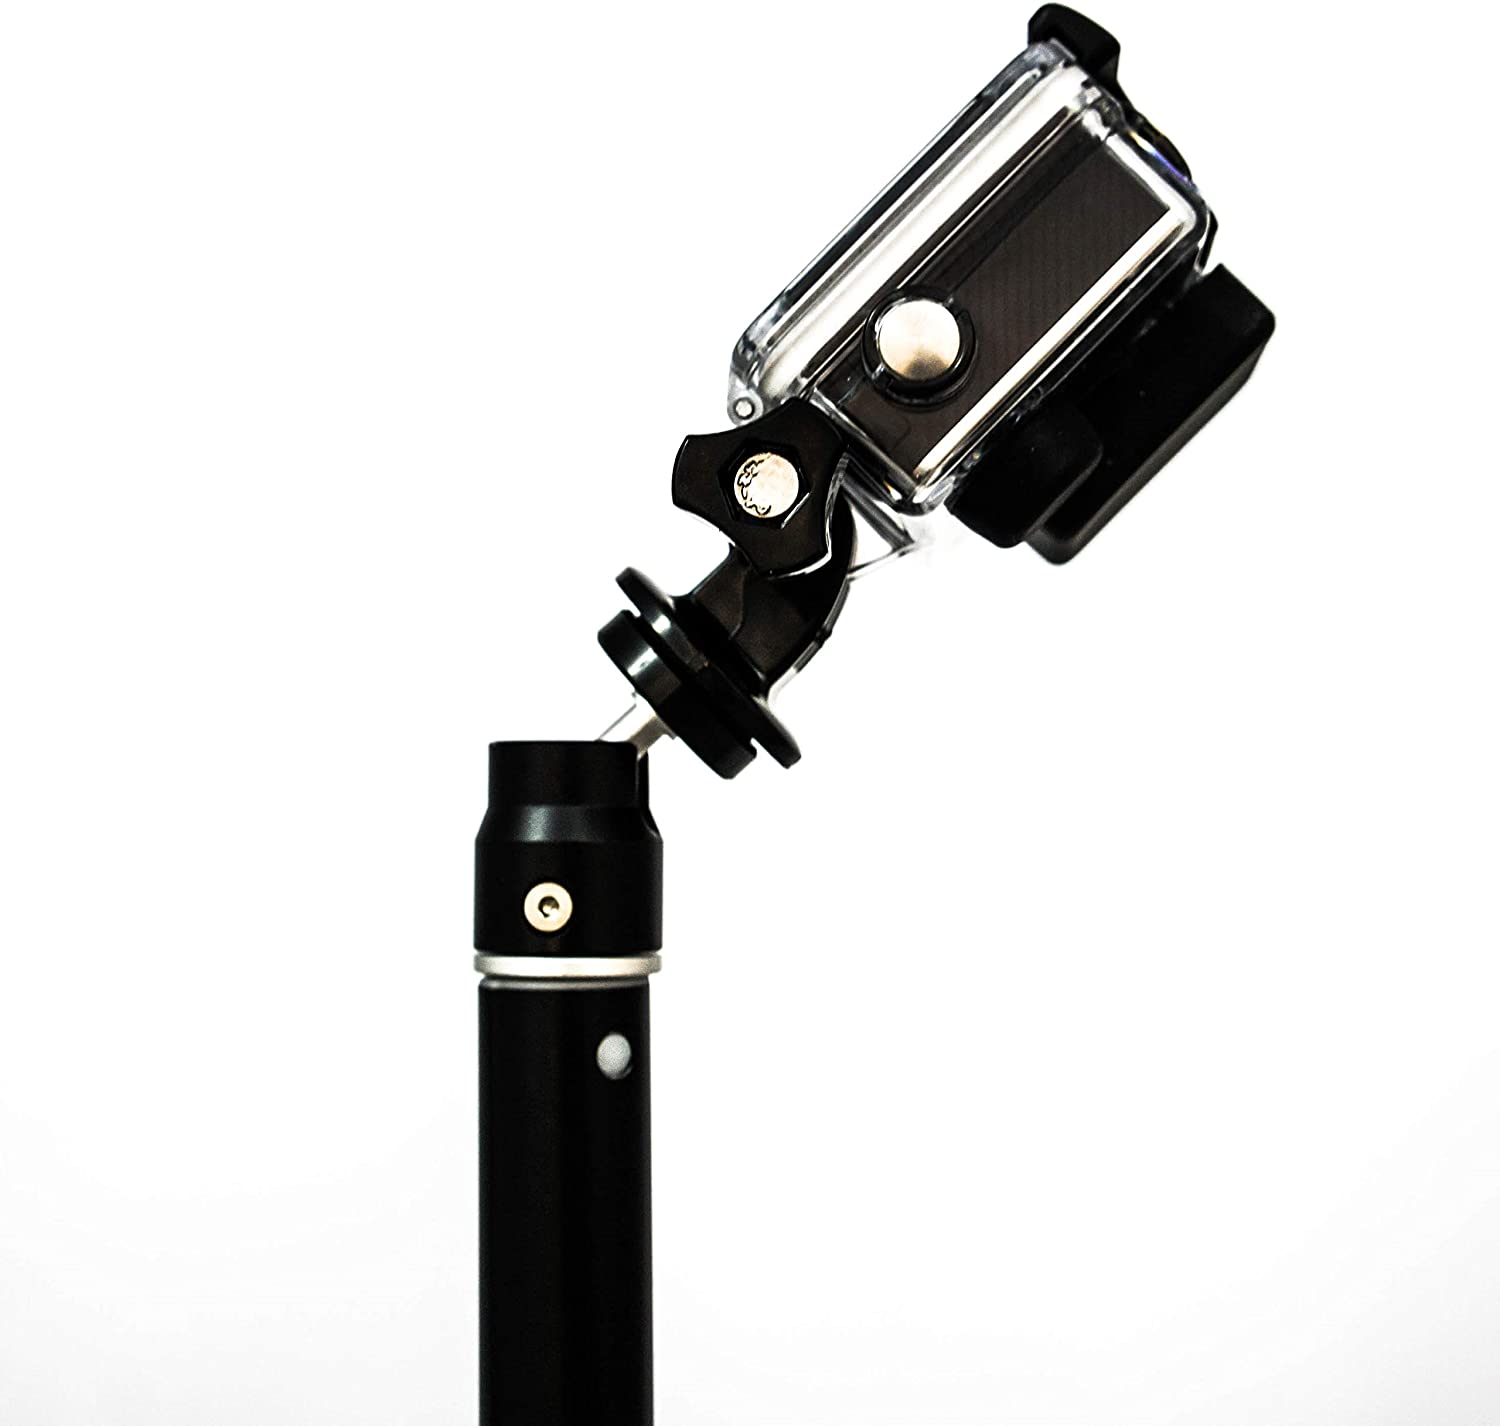 PRO MOUNTS TwinPole 2 in 1 Telescopic Pole and Floatable Handle Grip Compatible with All Major GoPro and Action Cameras